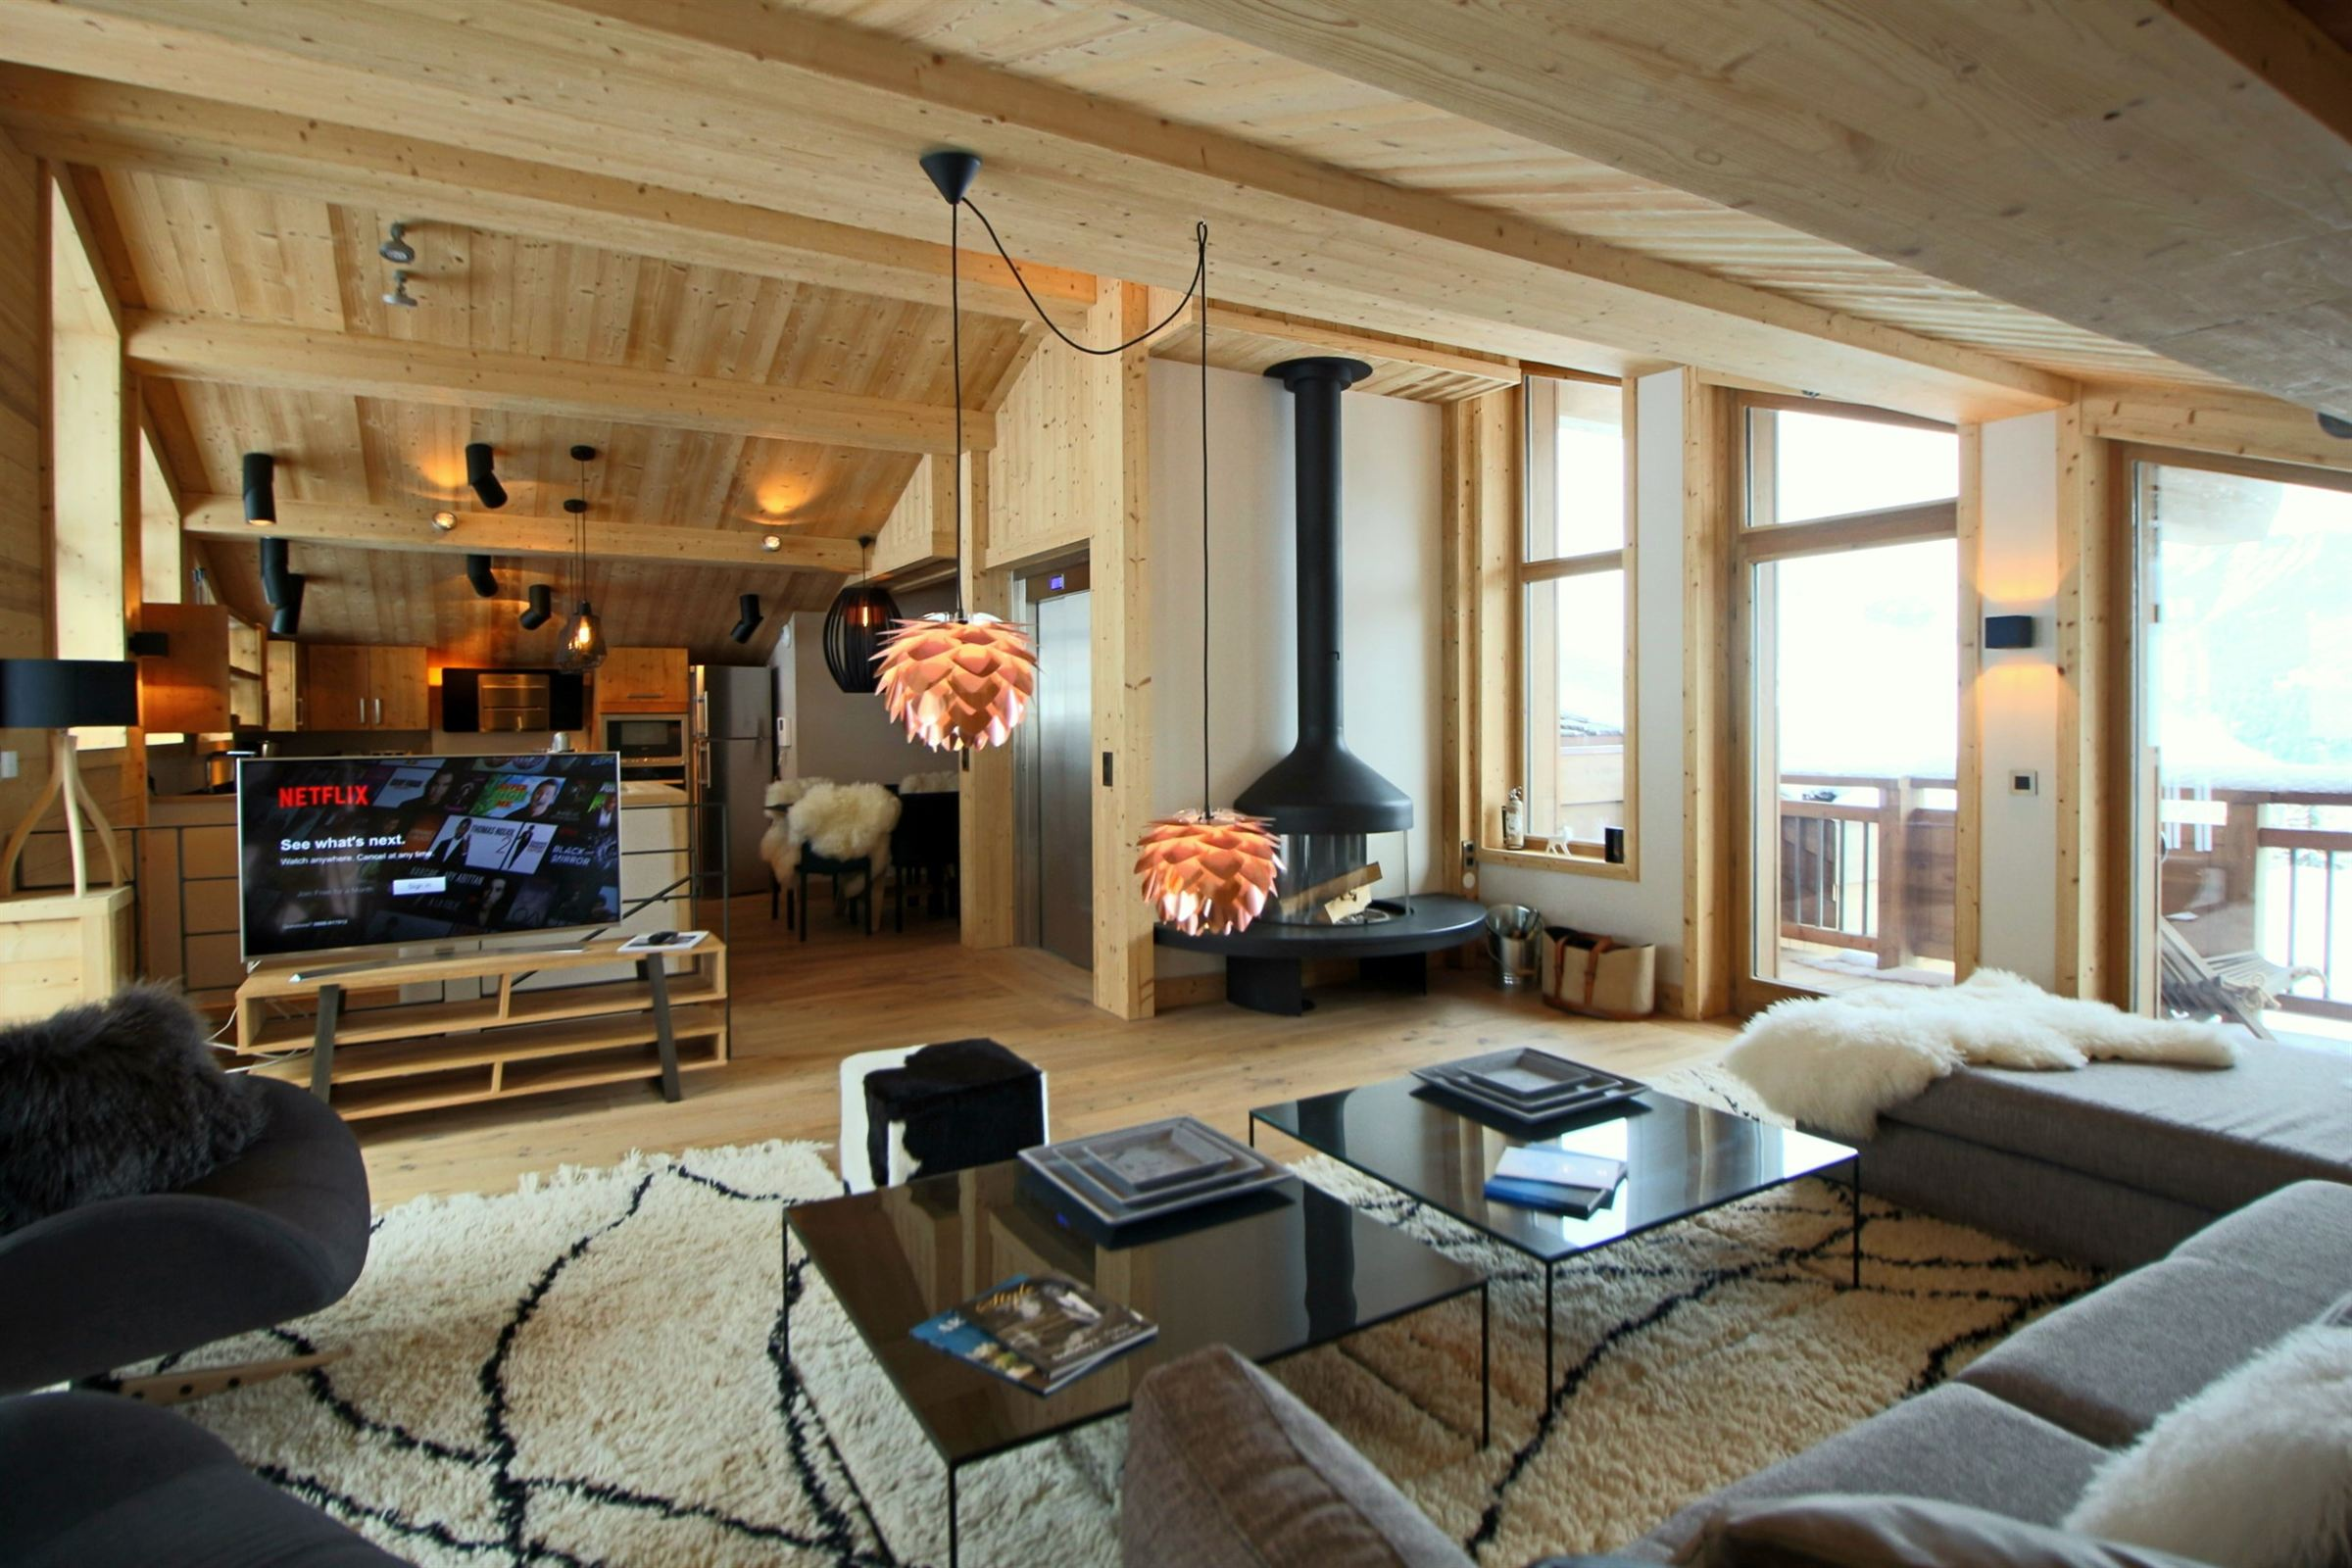 Maison unifamiliale pour l Vente à Chalet Eiger Courchevel Village Courchevel, Rhone-Alpes, 73120 France